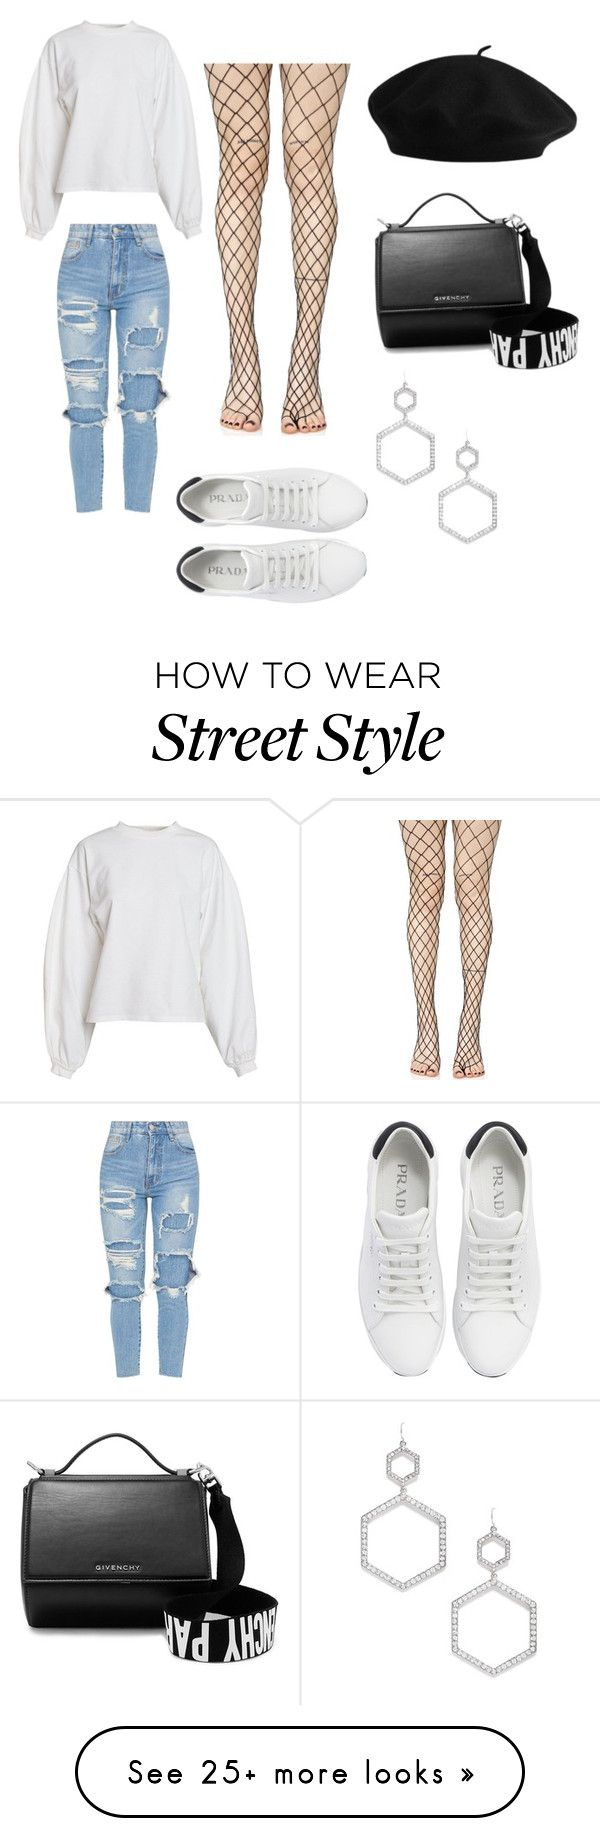 """""""Street Style 2"""" by kainacloset93 on Polyvore featuring NLY Trend, Leg Avenue, Prada, Givenchy and Forever 21"""